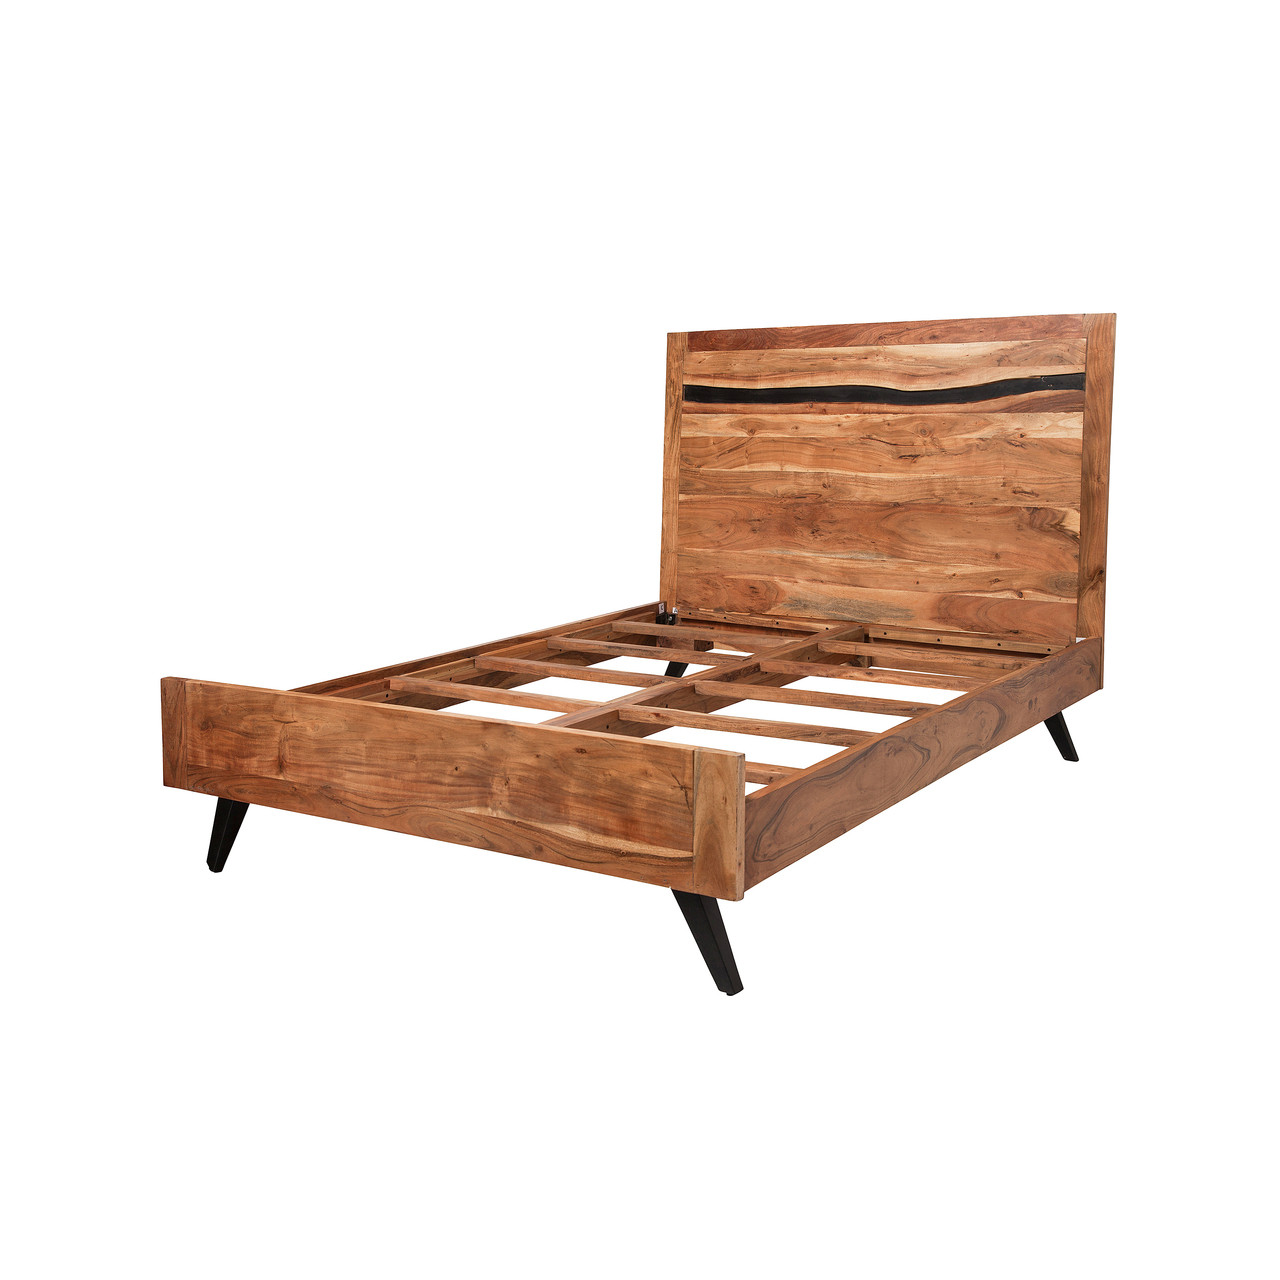 8cebcf10d05e Prana Reclaimed Mango Wood Queen Bed Frame - Design Tree Home